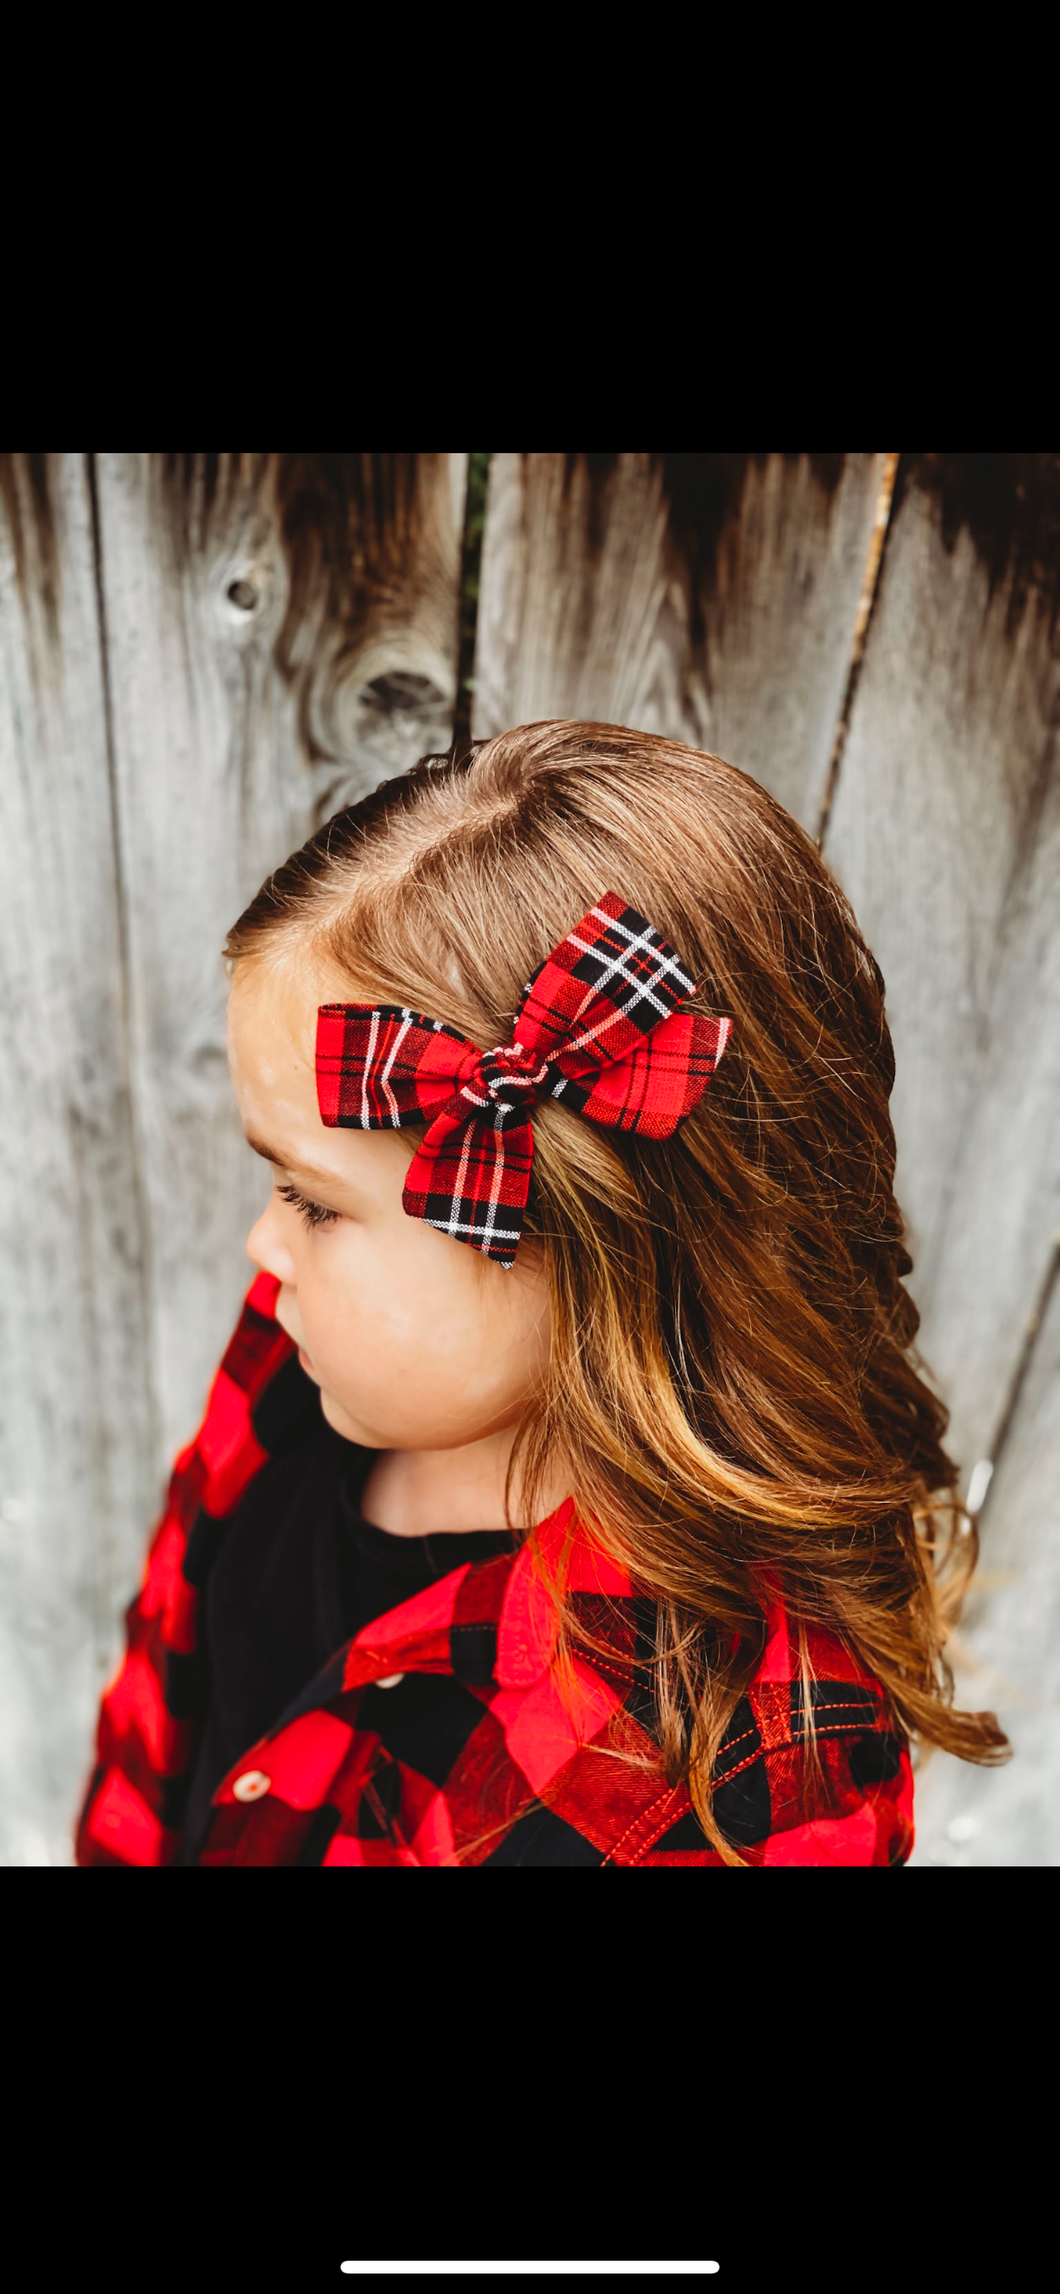 Red and Black Tartan Plaid Hand-tied Bow